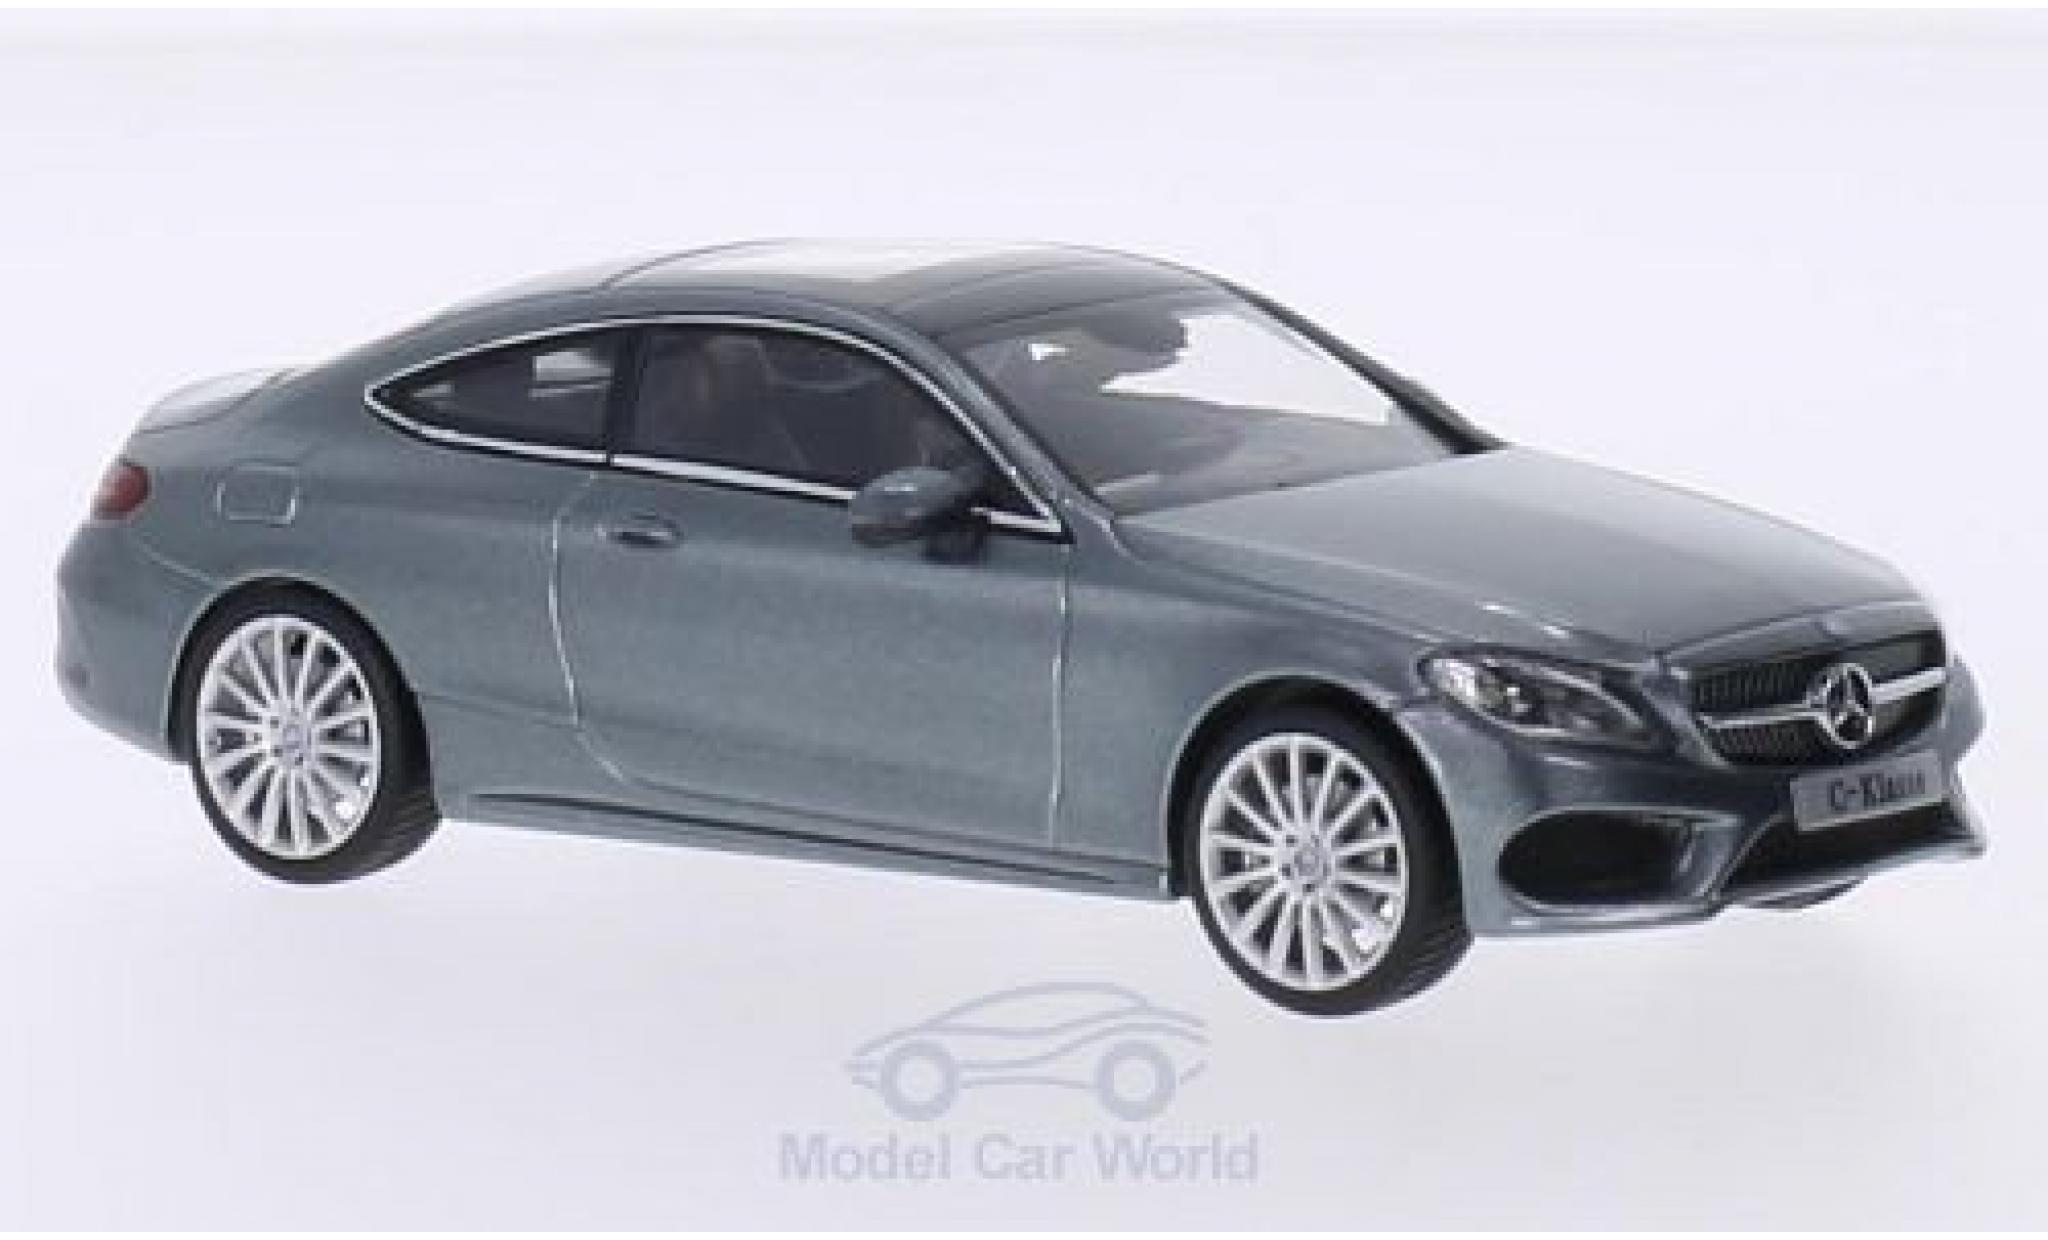 Mercedes Classe C 1/43 iScale Coupe metallise grey